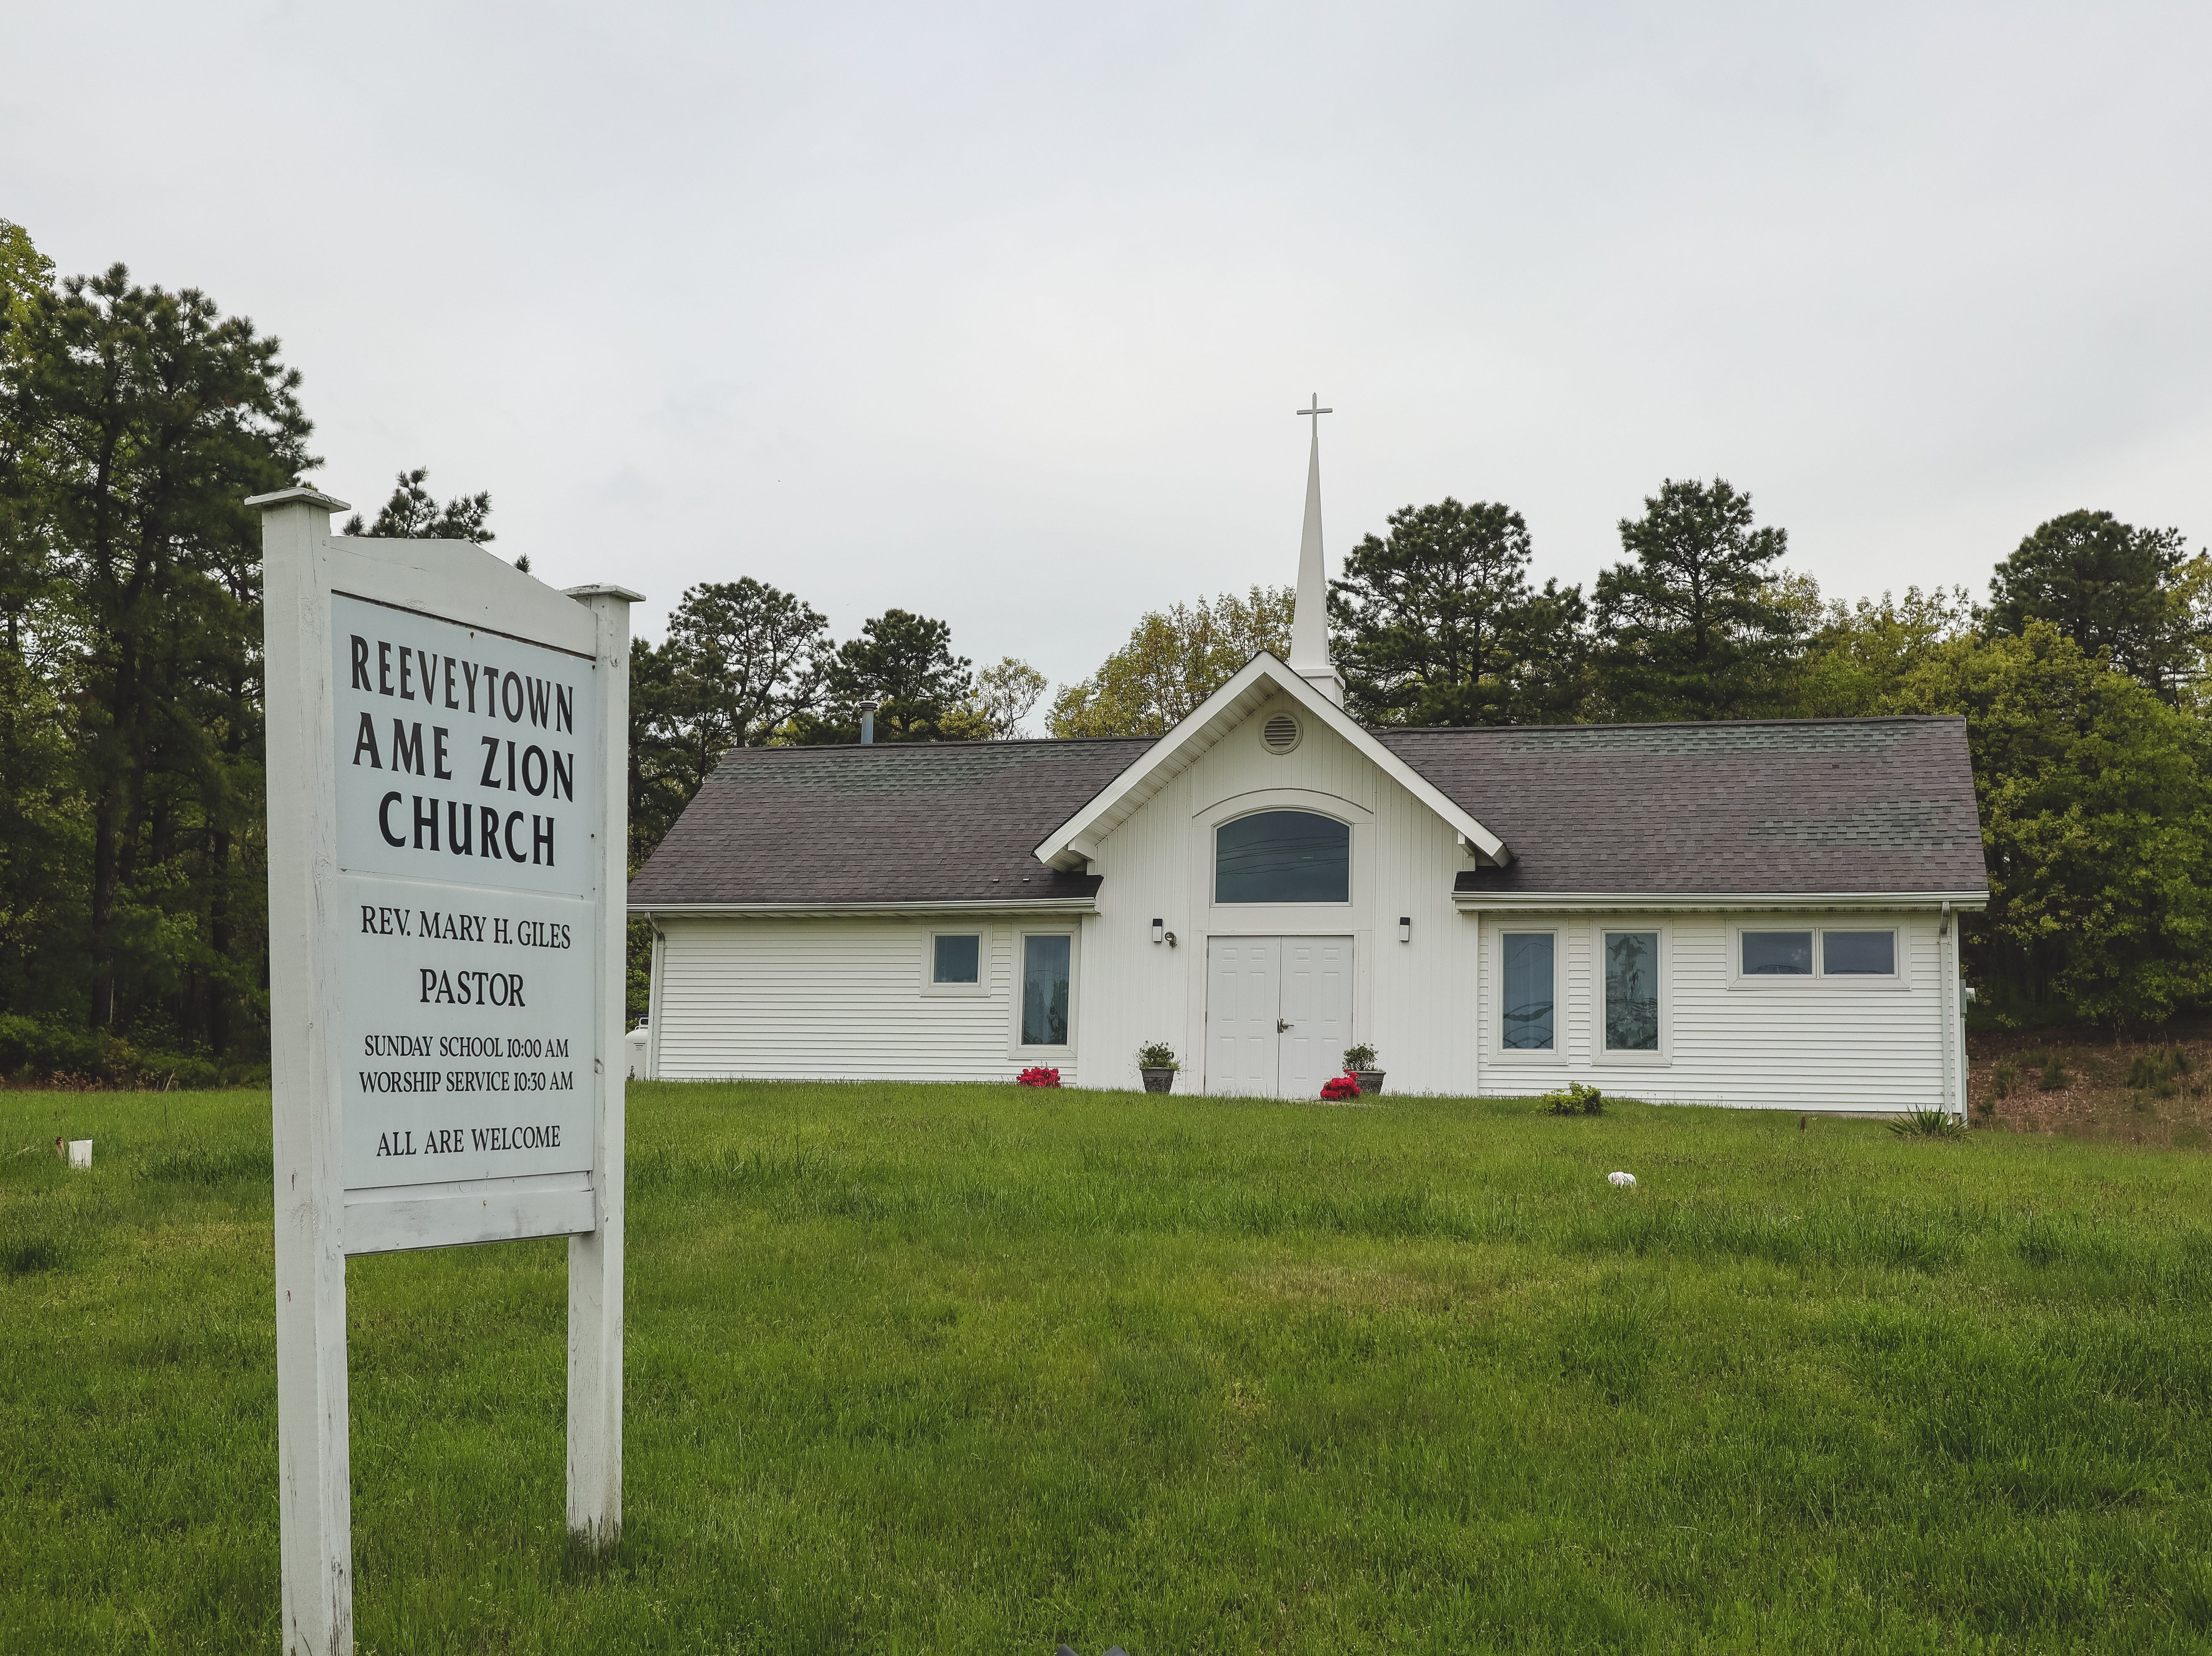 The Reeveytown A.M.E. Zion Church on Shafto Road in Tinton Falls. The church was started in the 1880s. The original church was demolished in 1994 to make way for the Monmouth County Reclamation Center.